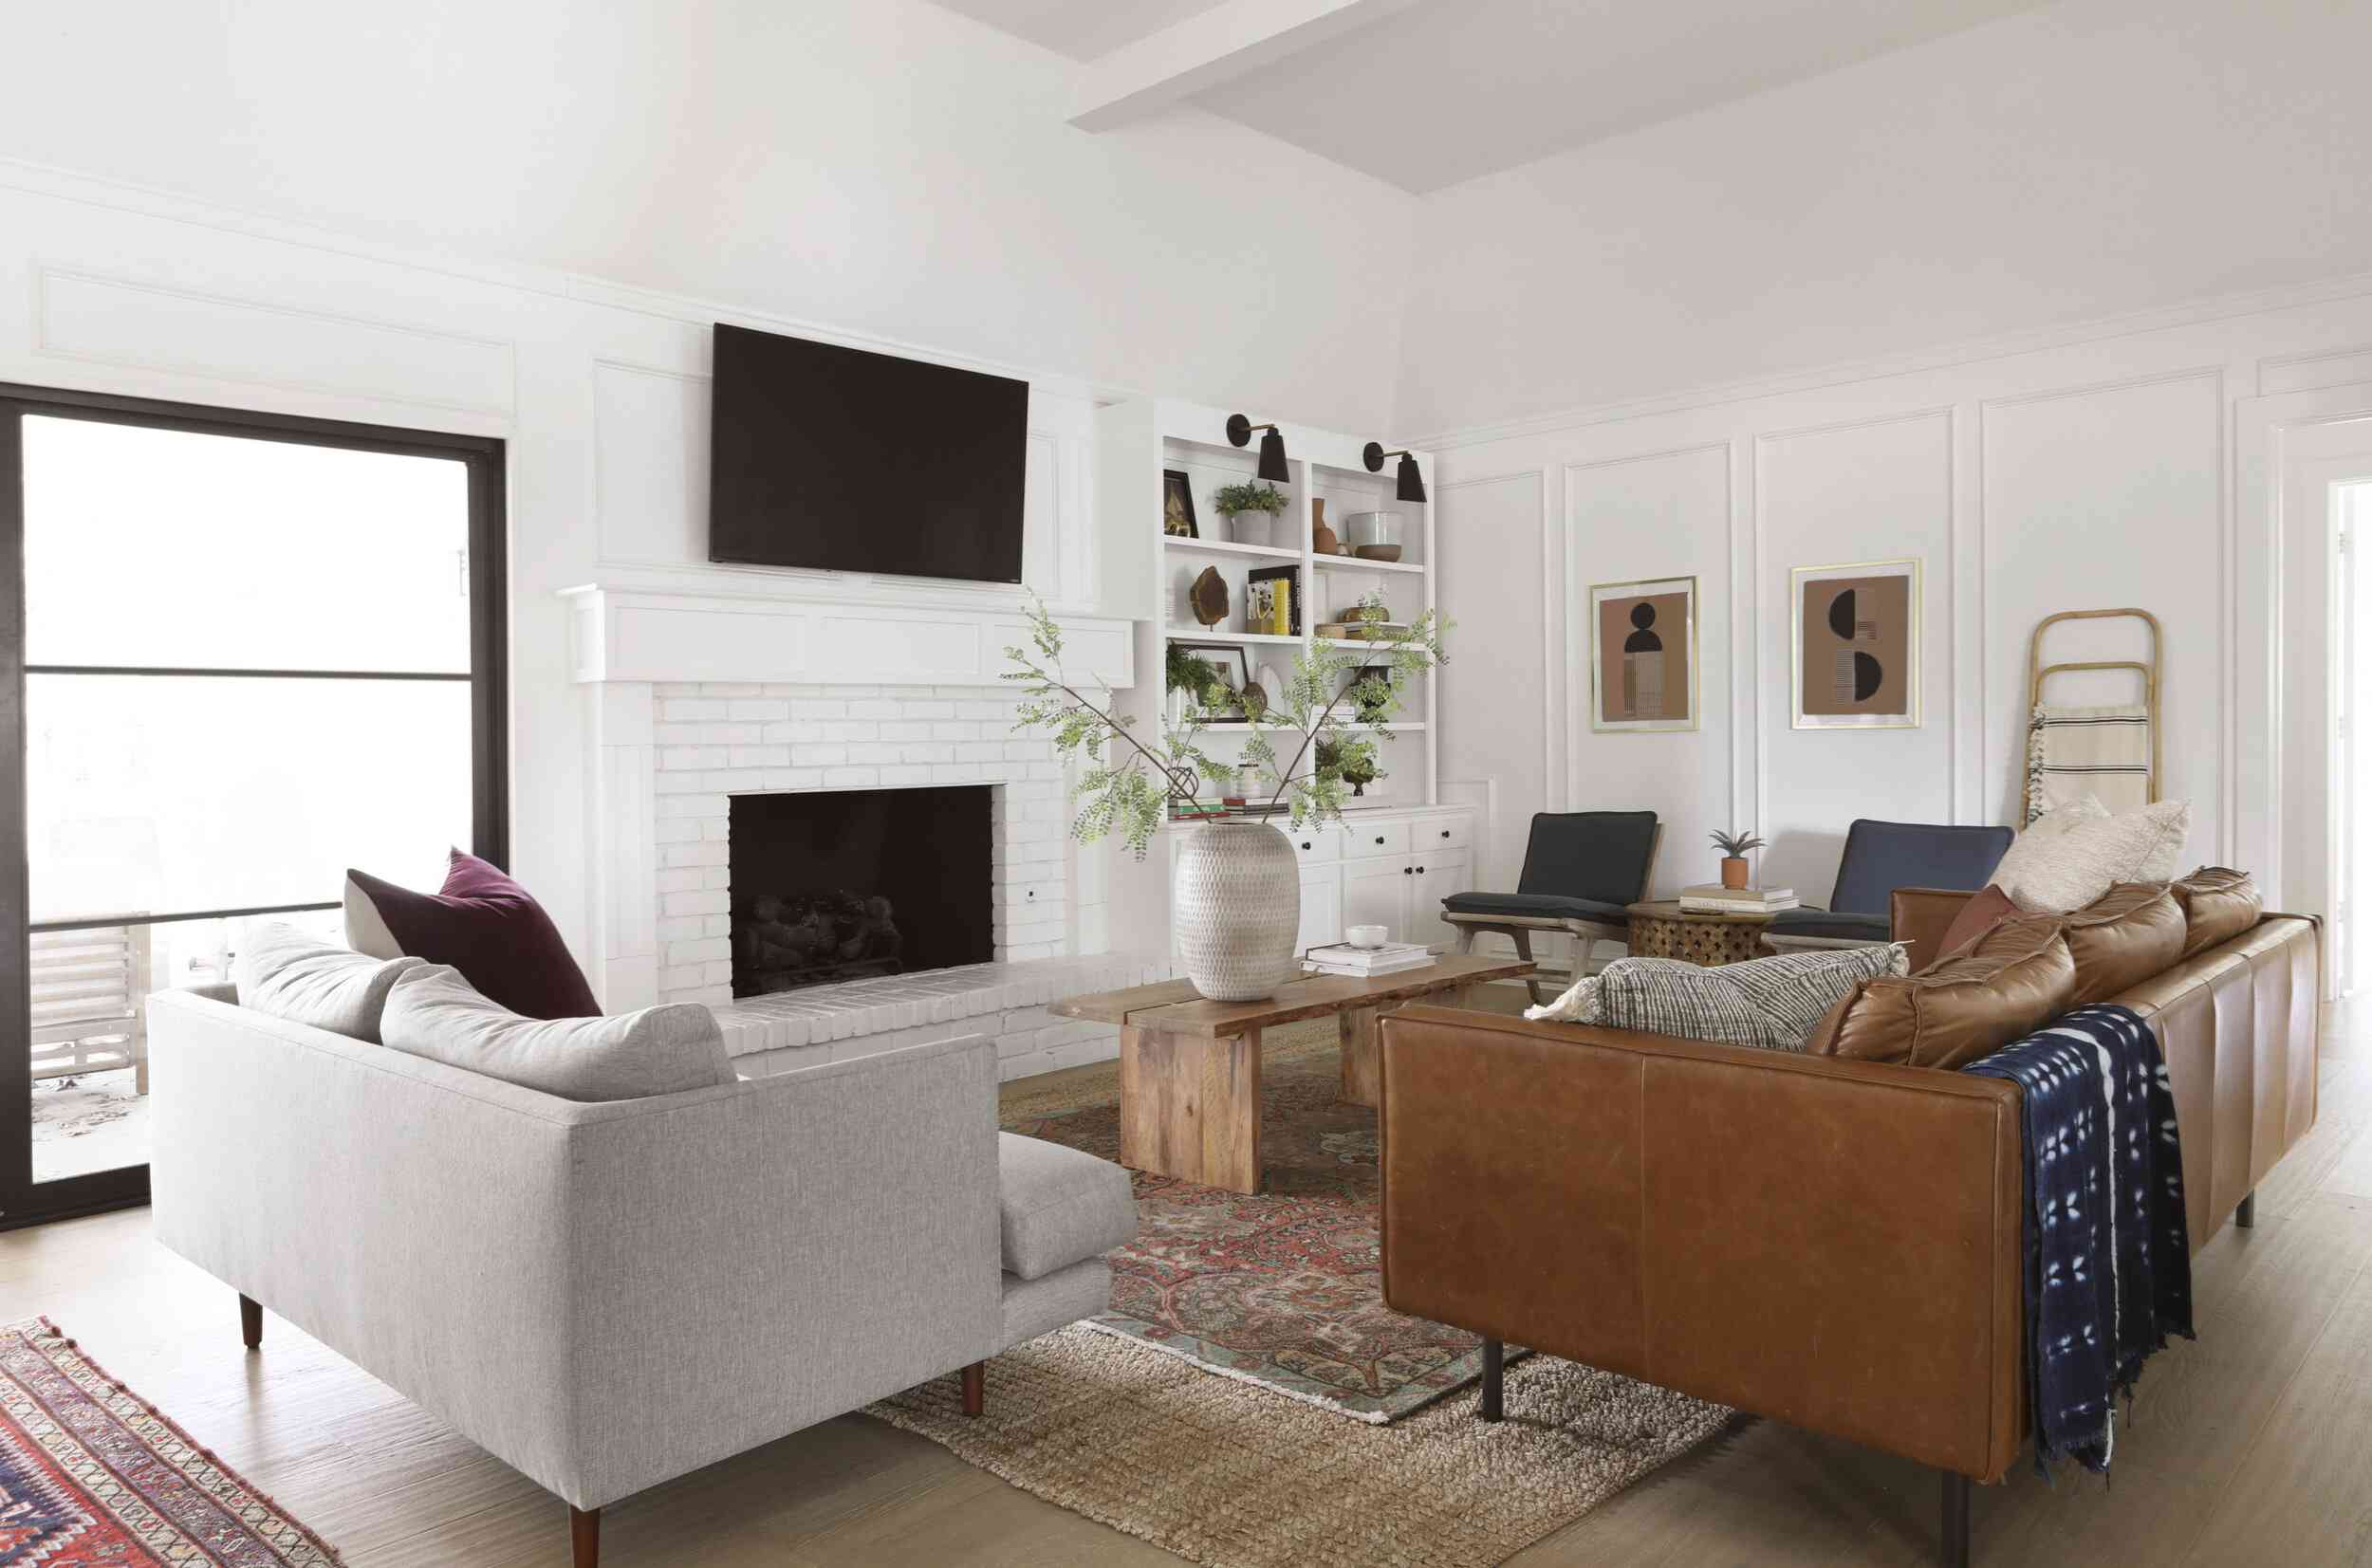 best living room ideas - white walls with caramel colored couches and warm accents